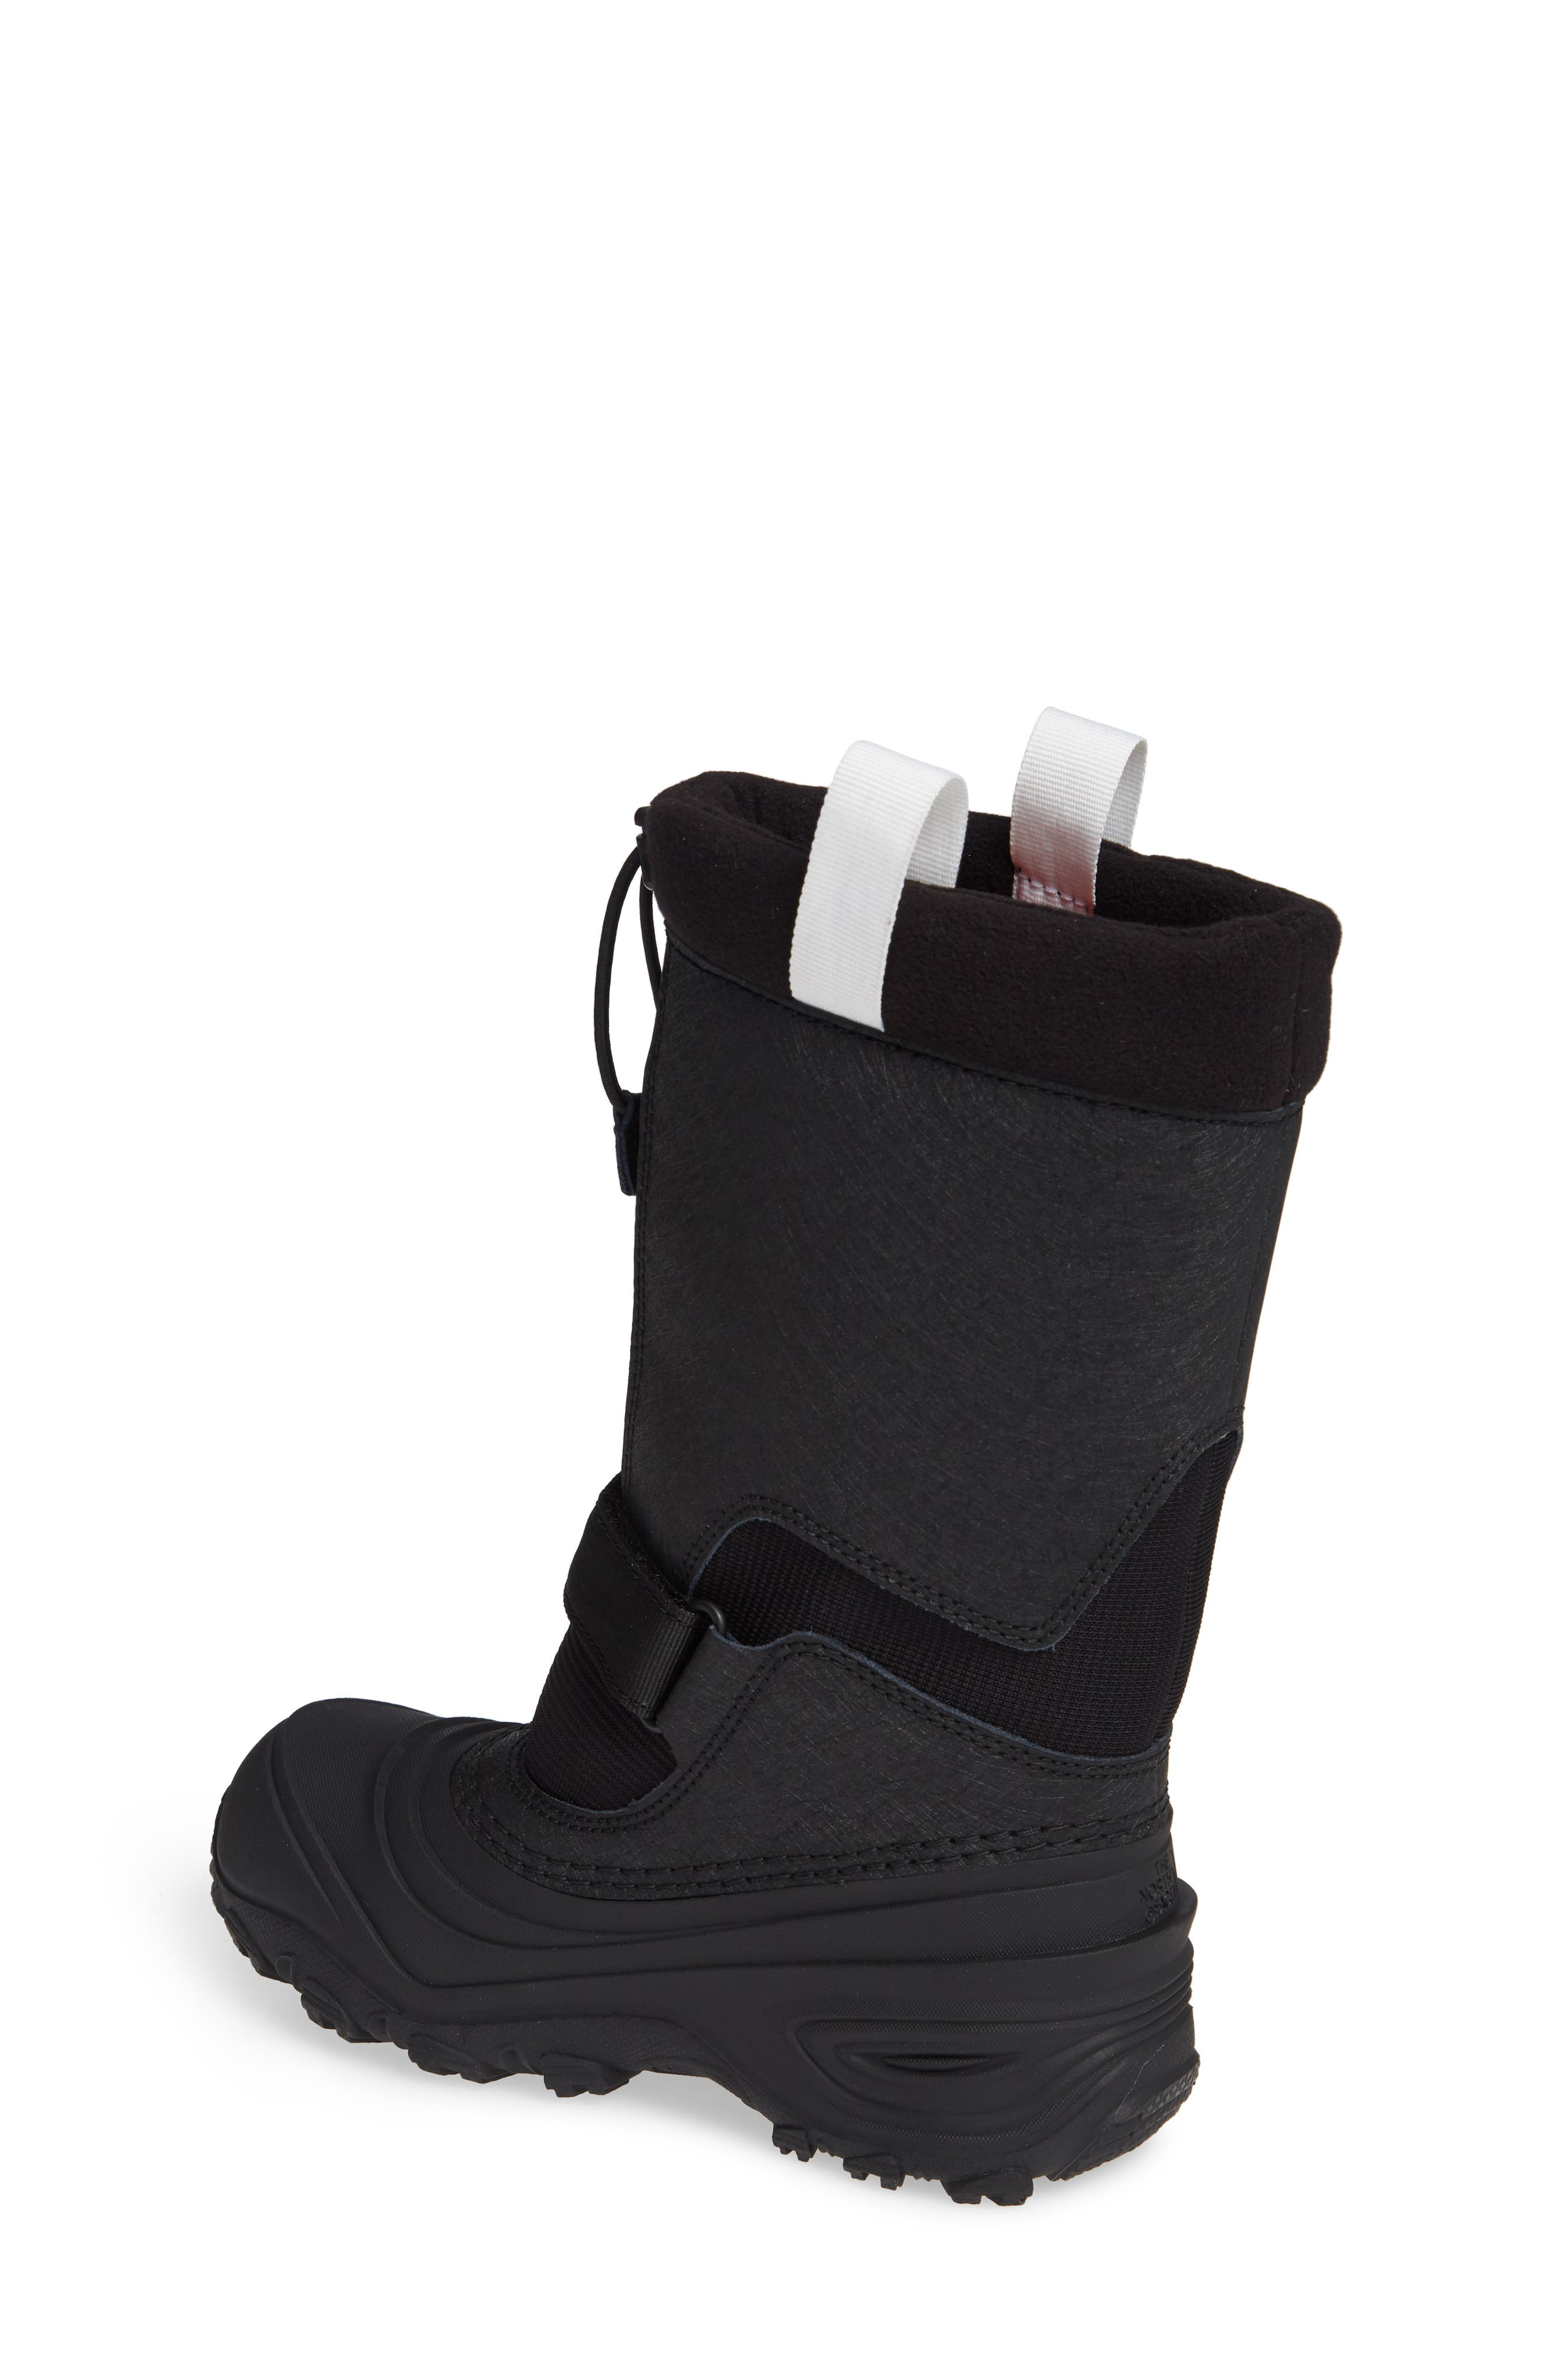 Alpenglow Extreme III Waterproof Snow Boot,                             Alternate thumbnail 2, color,                             001